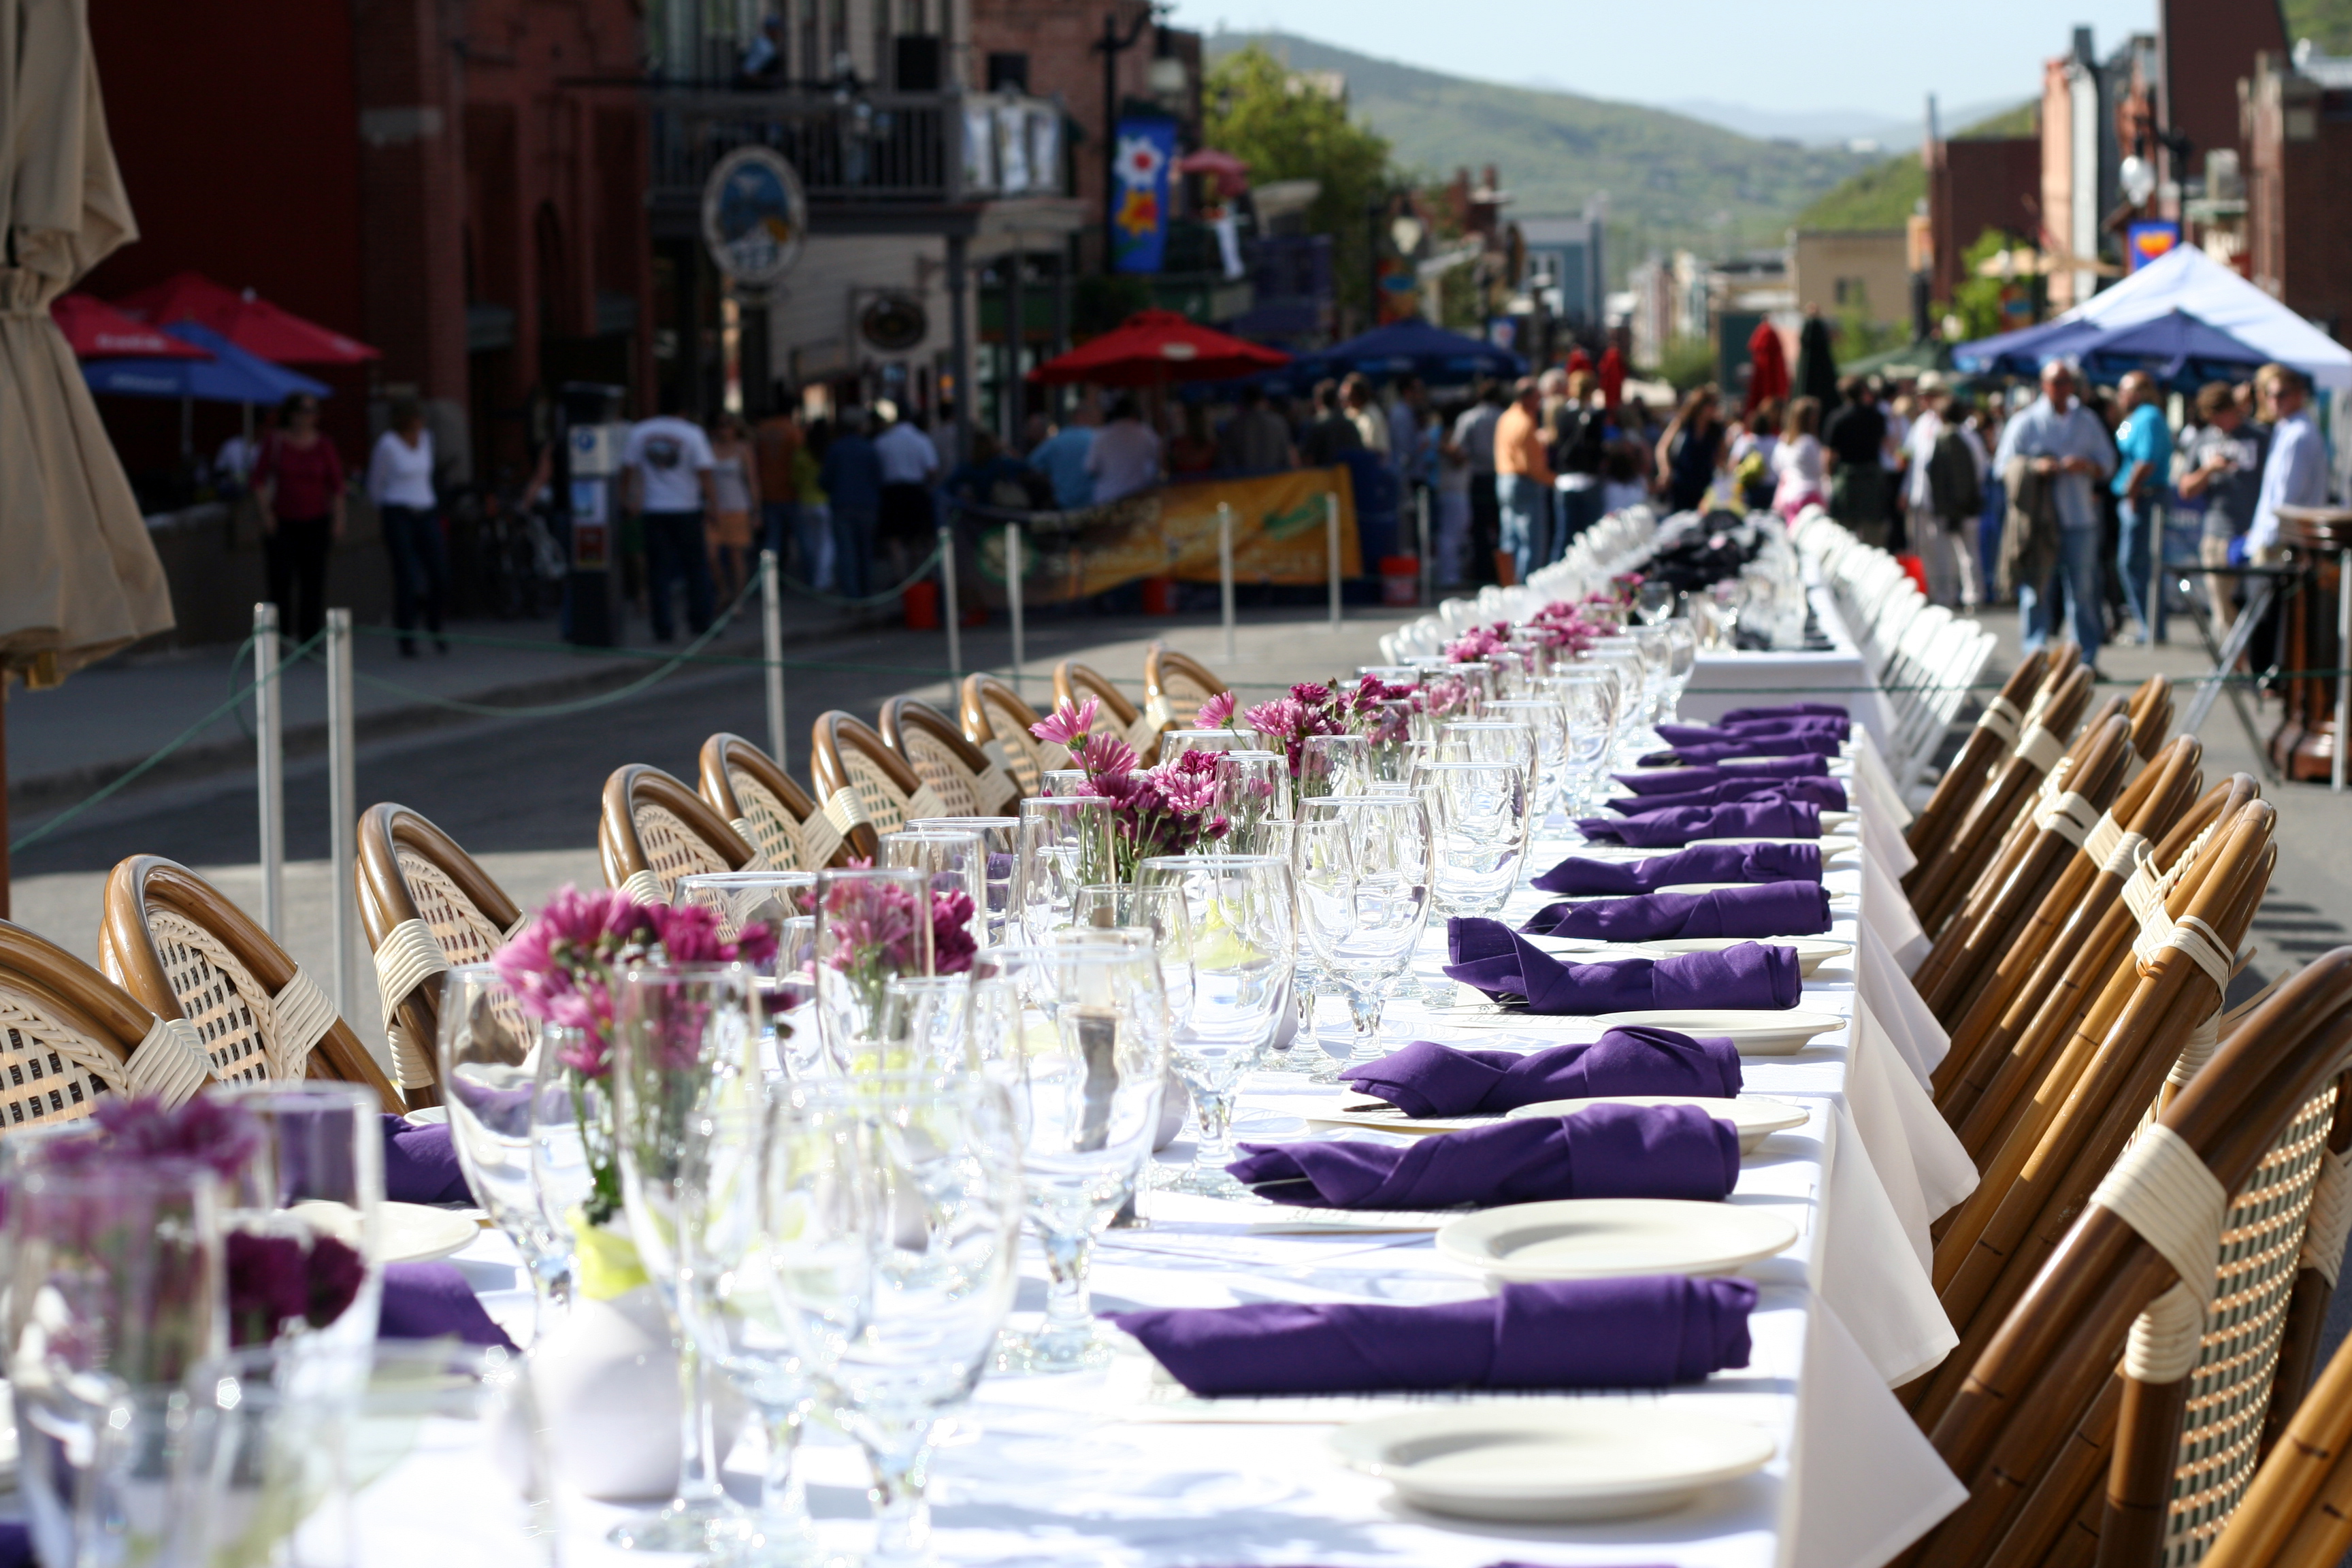 Savor the Summit Park City food event